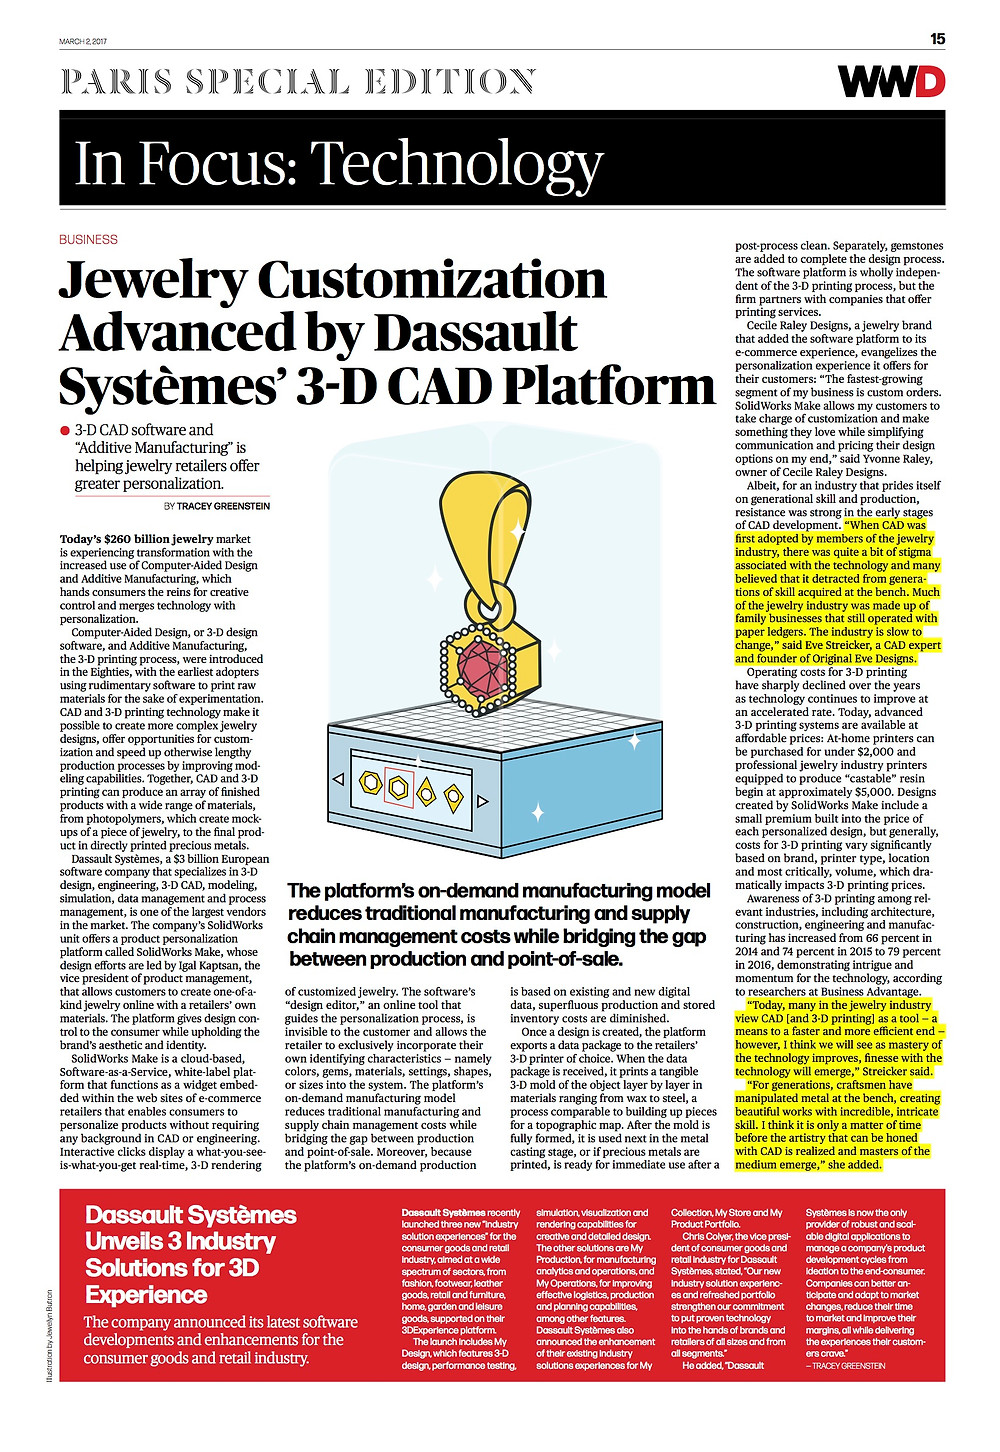 WWD In Focus: Jewelry Customization Advanced 3-D CAD